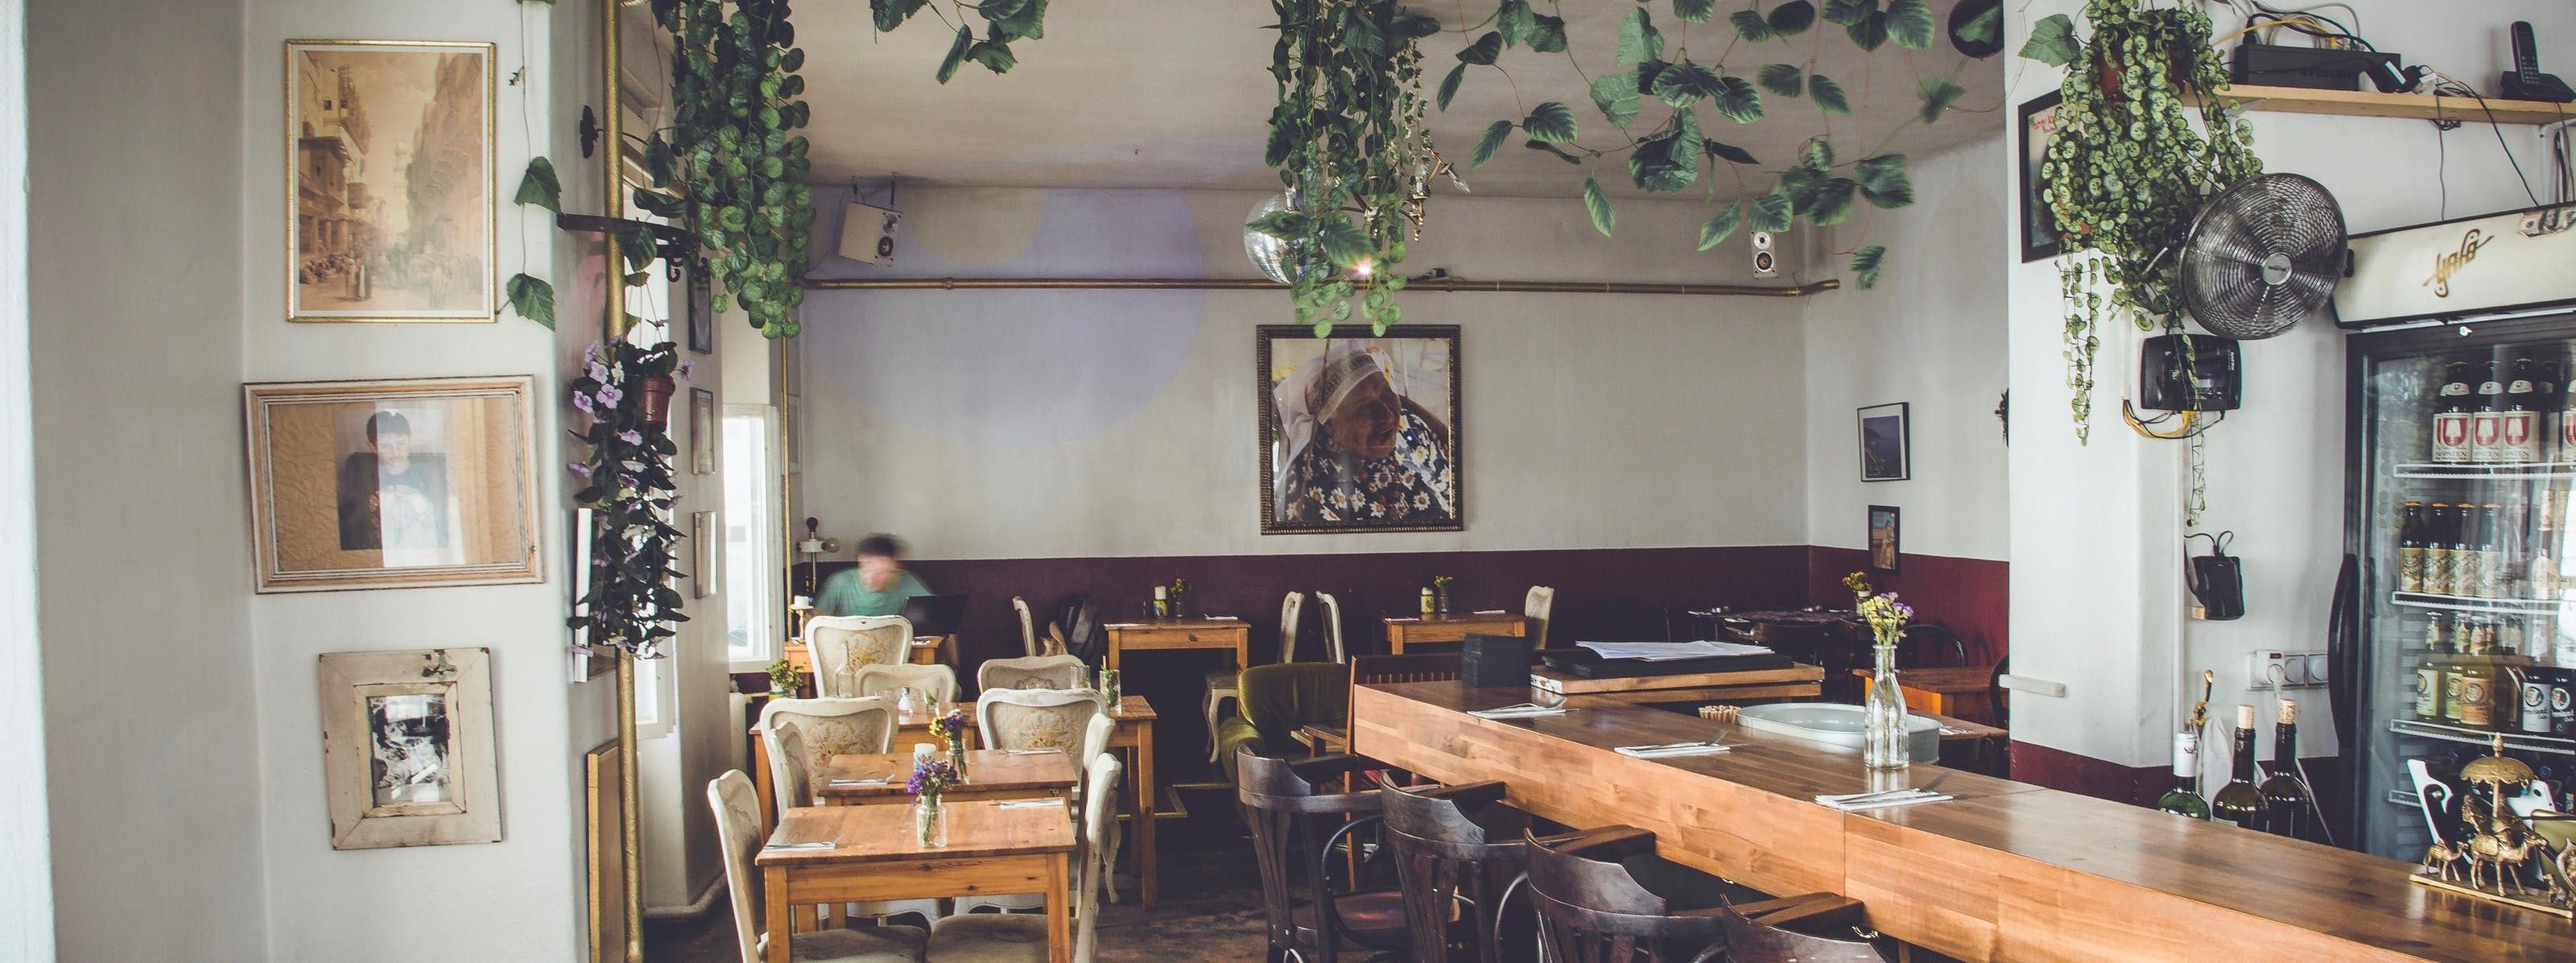 The 27 Best Places To Eat & Drink In Berlin - Berlin - The Infatuation